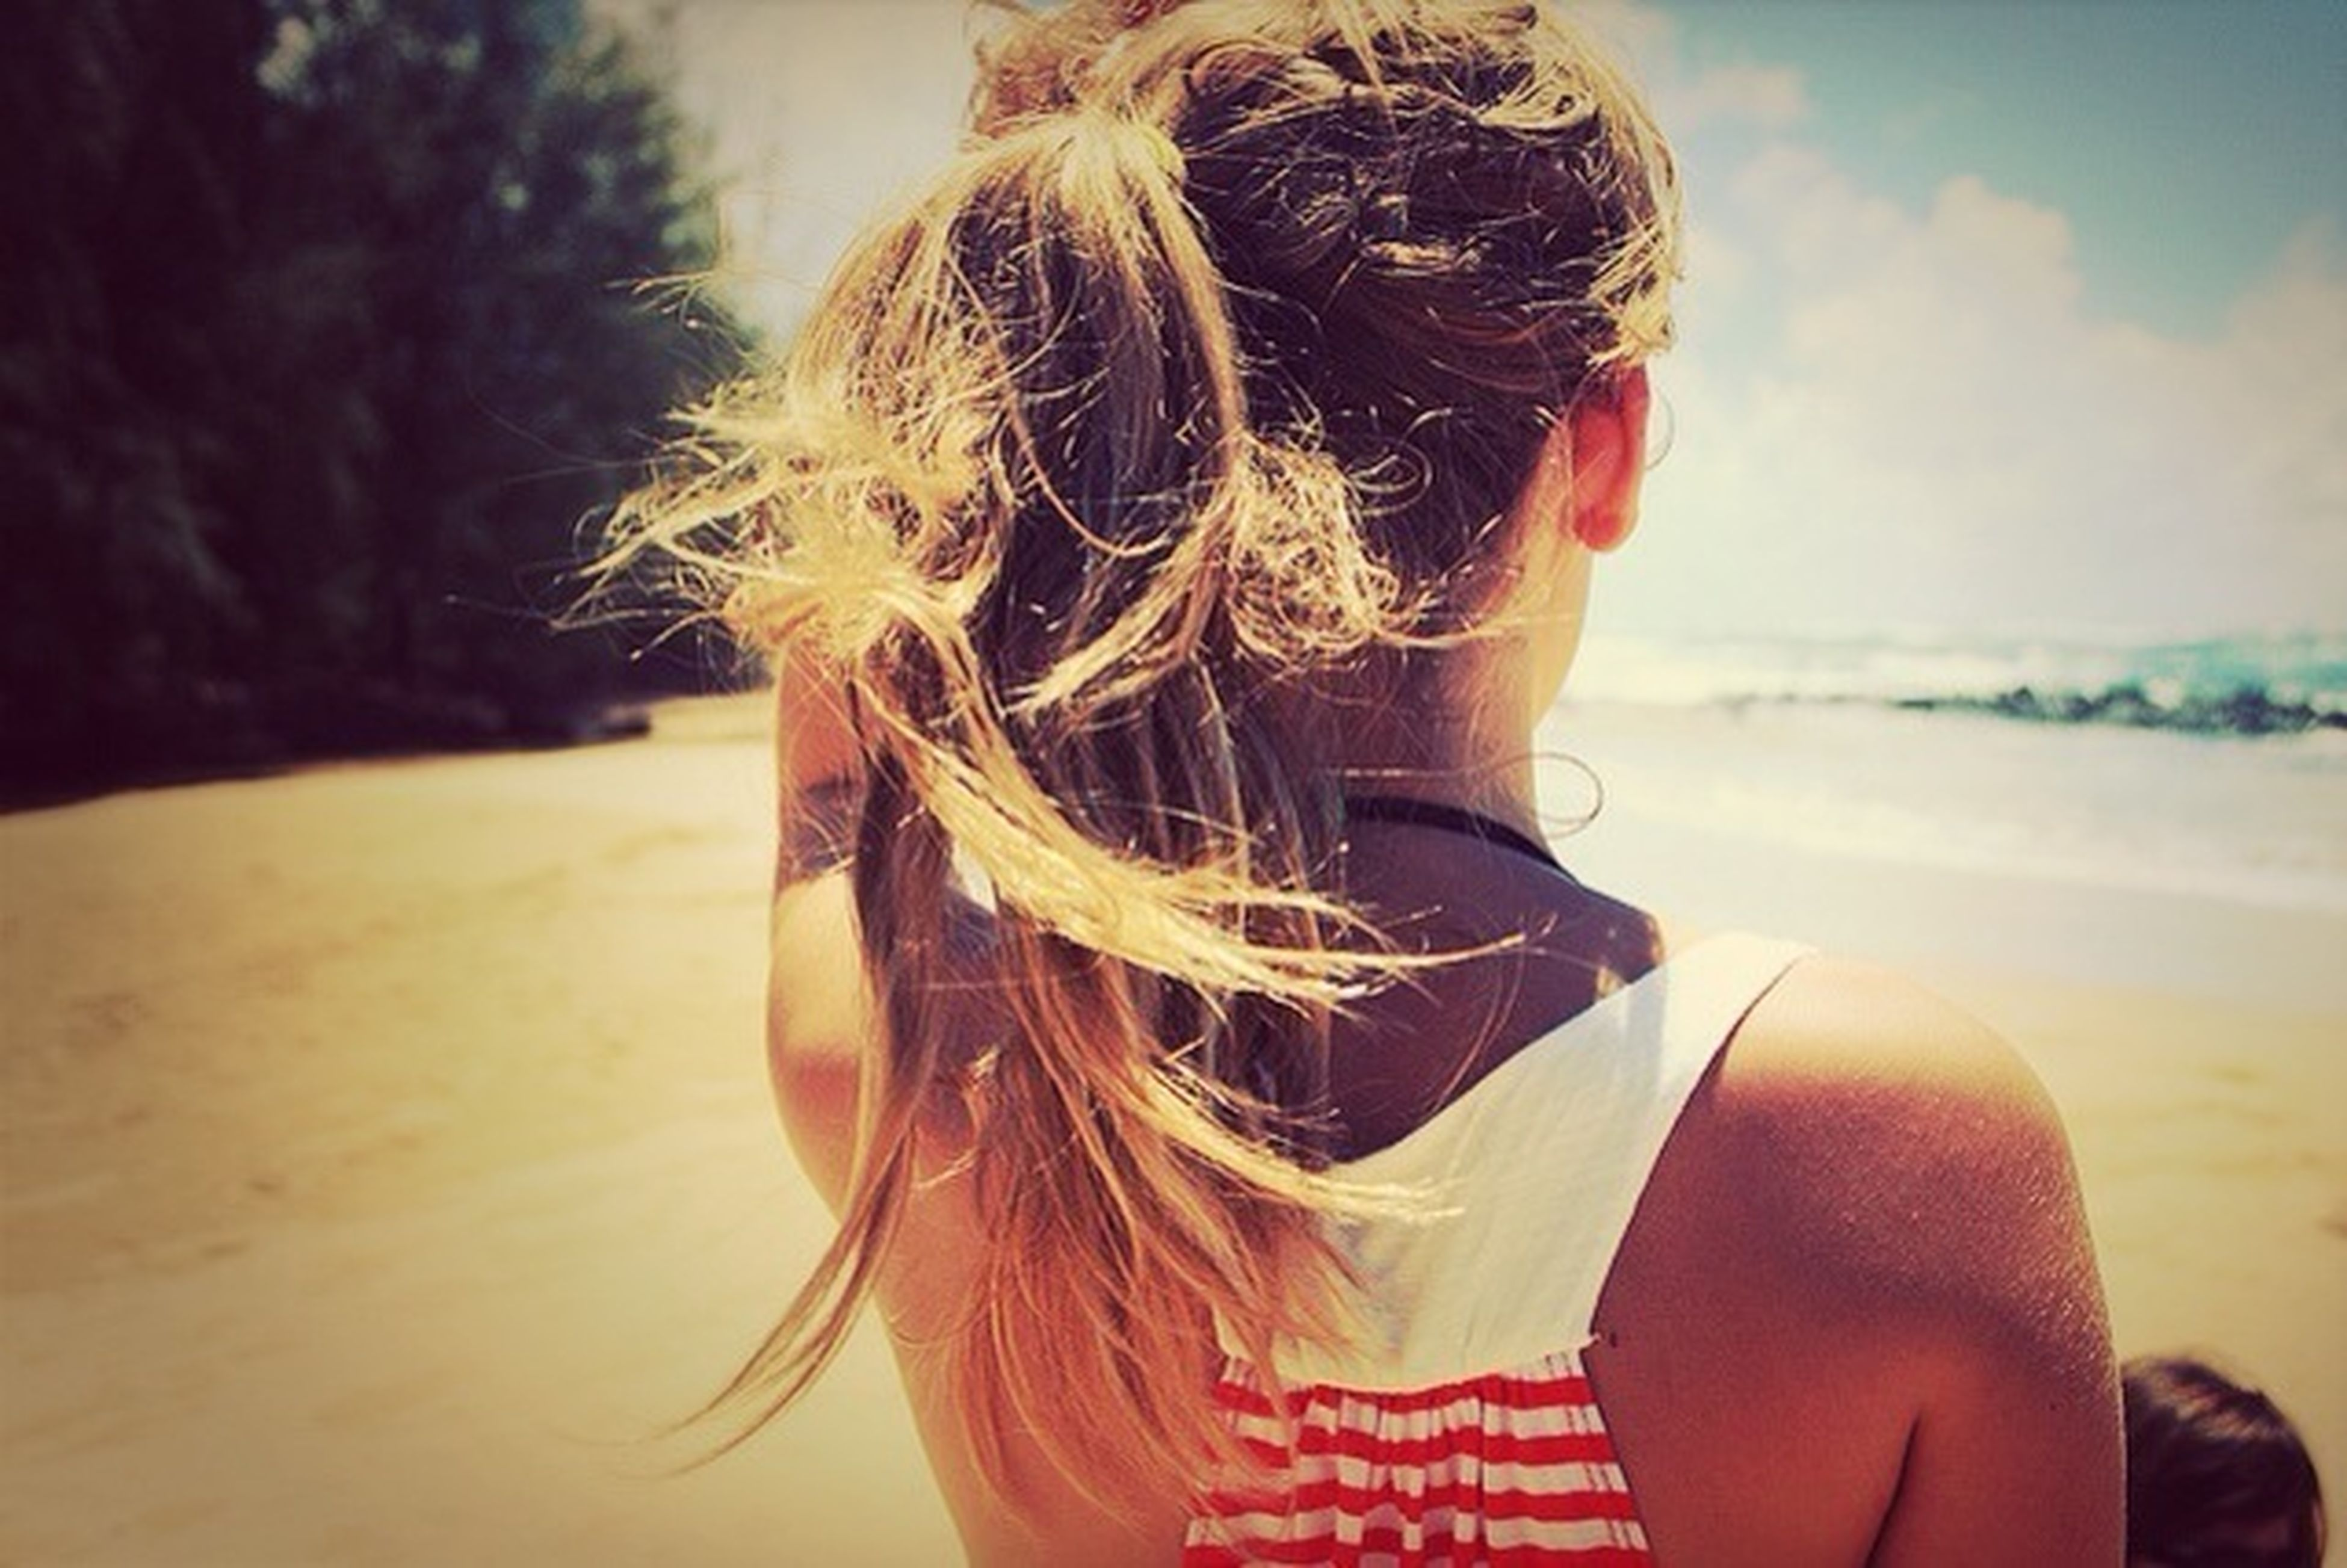 lifestyles, leisure activity, beach, long hair, focus on foreground, young women, headshot, sand, person, blond hair, young adult, close-up, sky, sunglasses, brown hair, vacations, outdoors